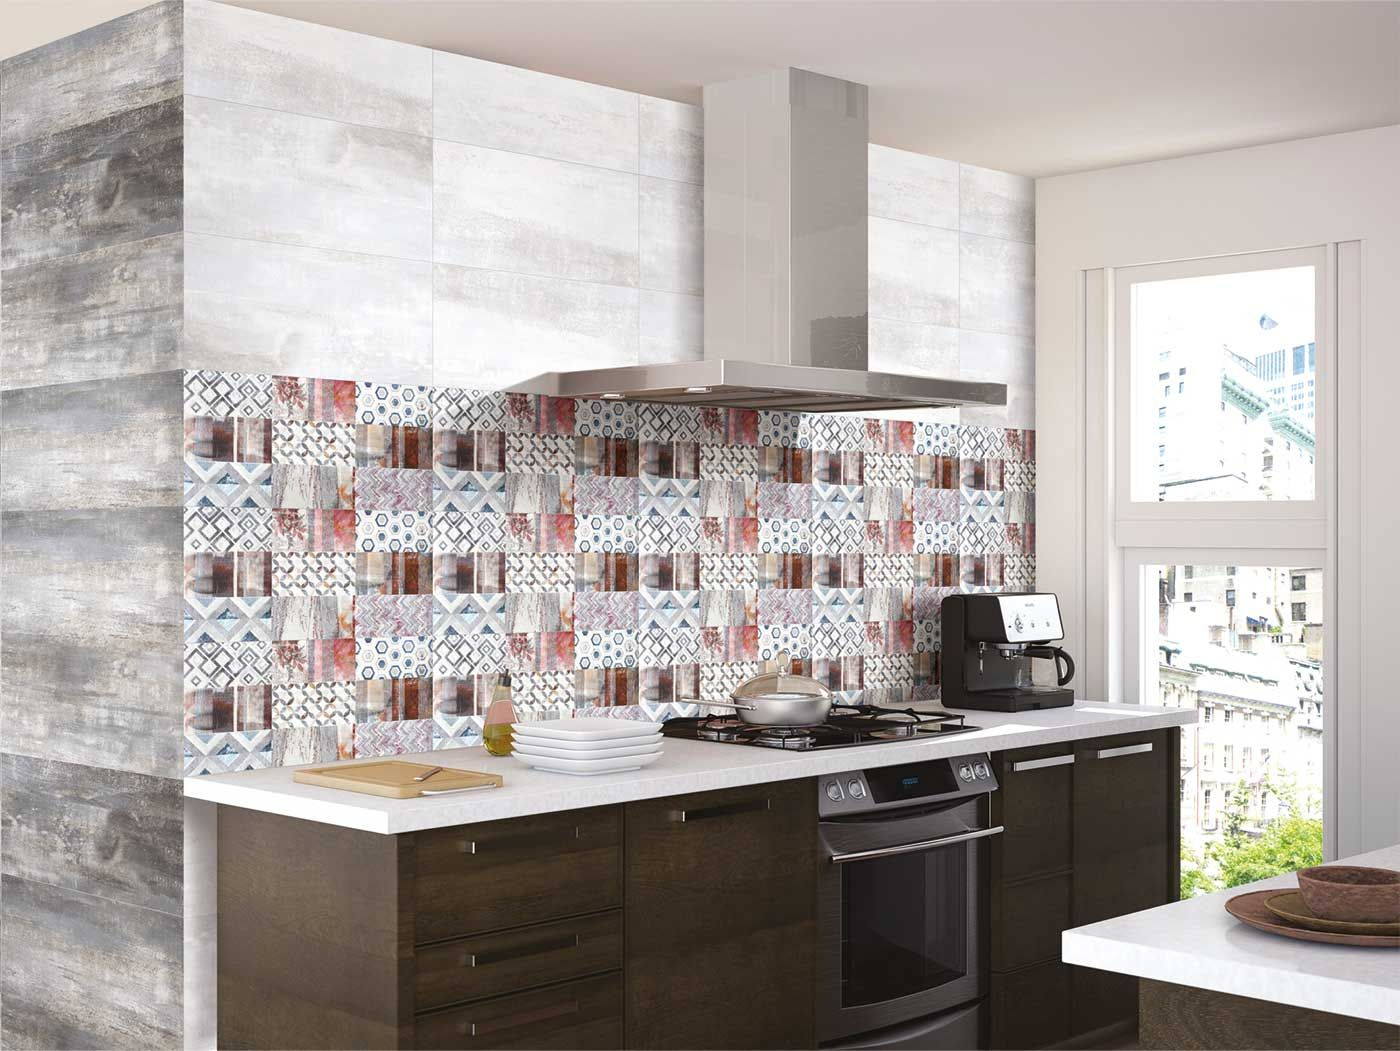 7+ Unique Metallic Tiles - Decortez  Kitchen tiles design